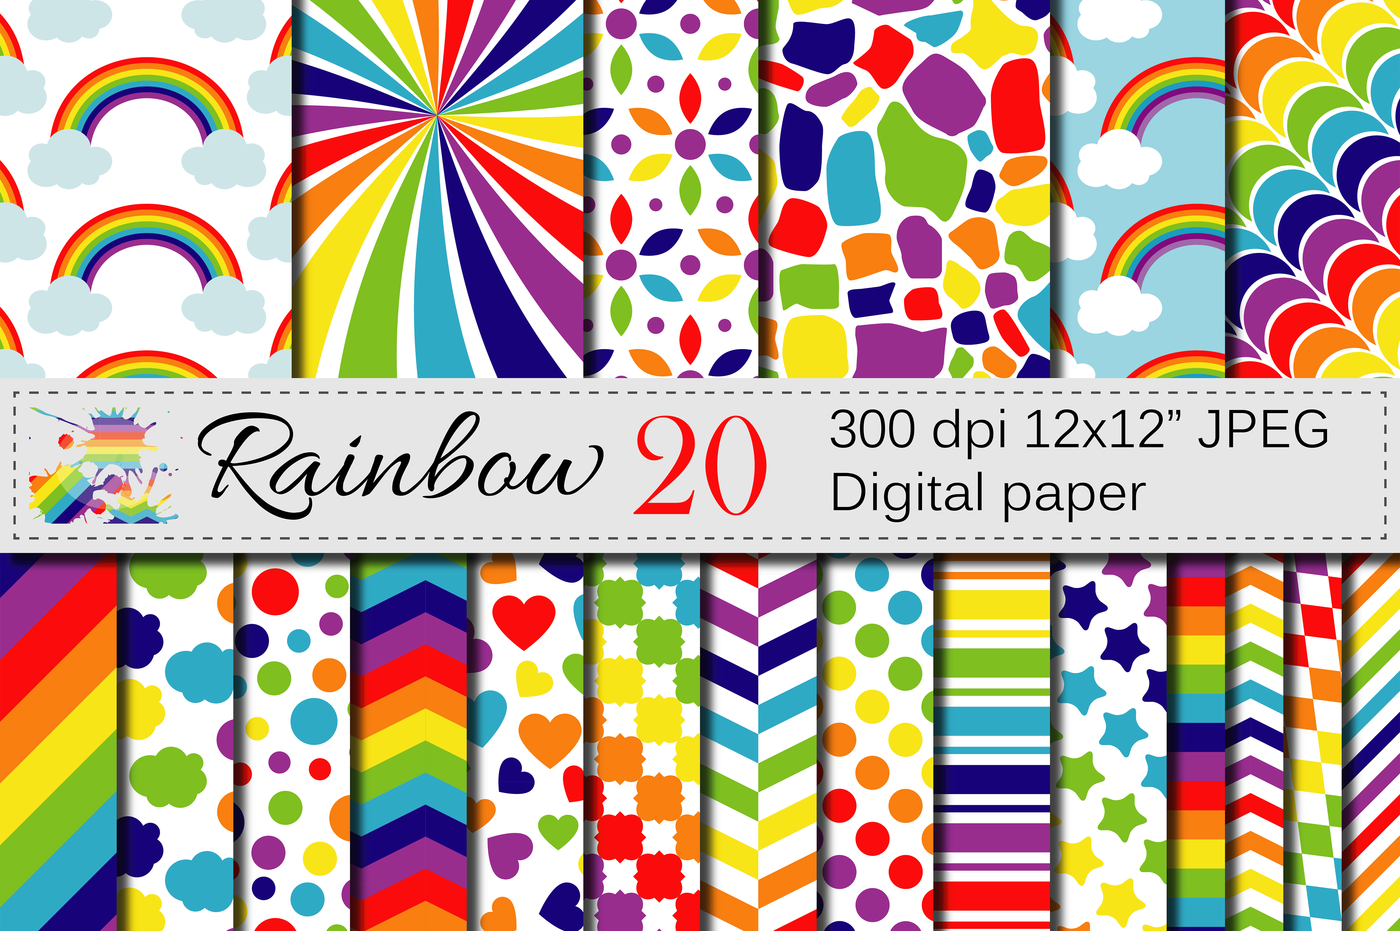 Rainbow Digital Paper Pack Multicolored Scrapbooking Papers